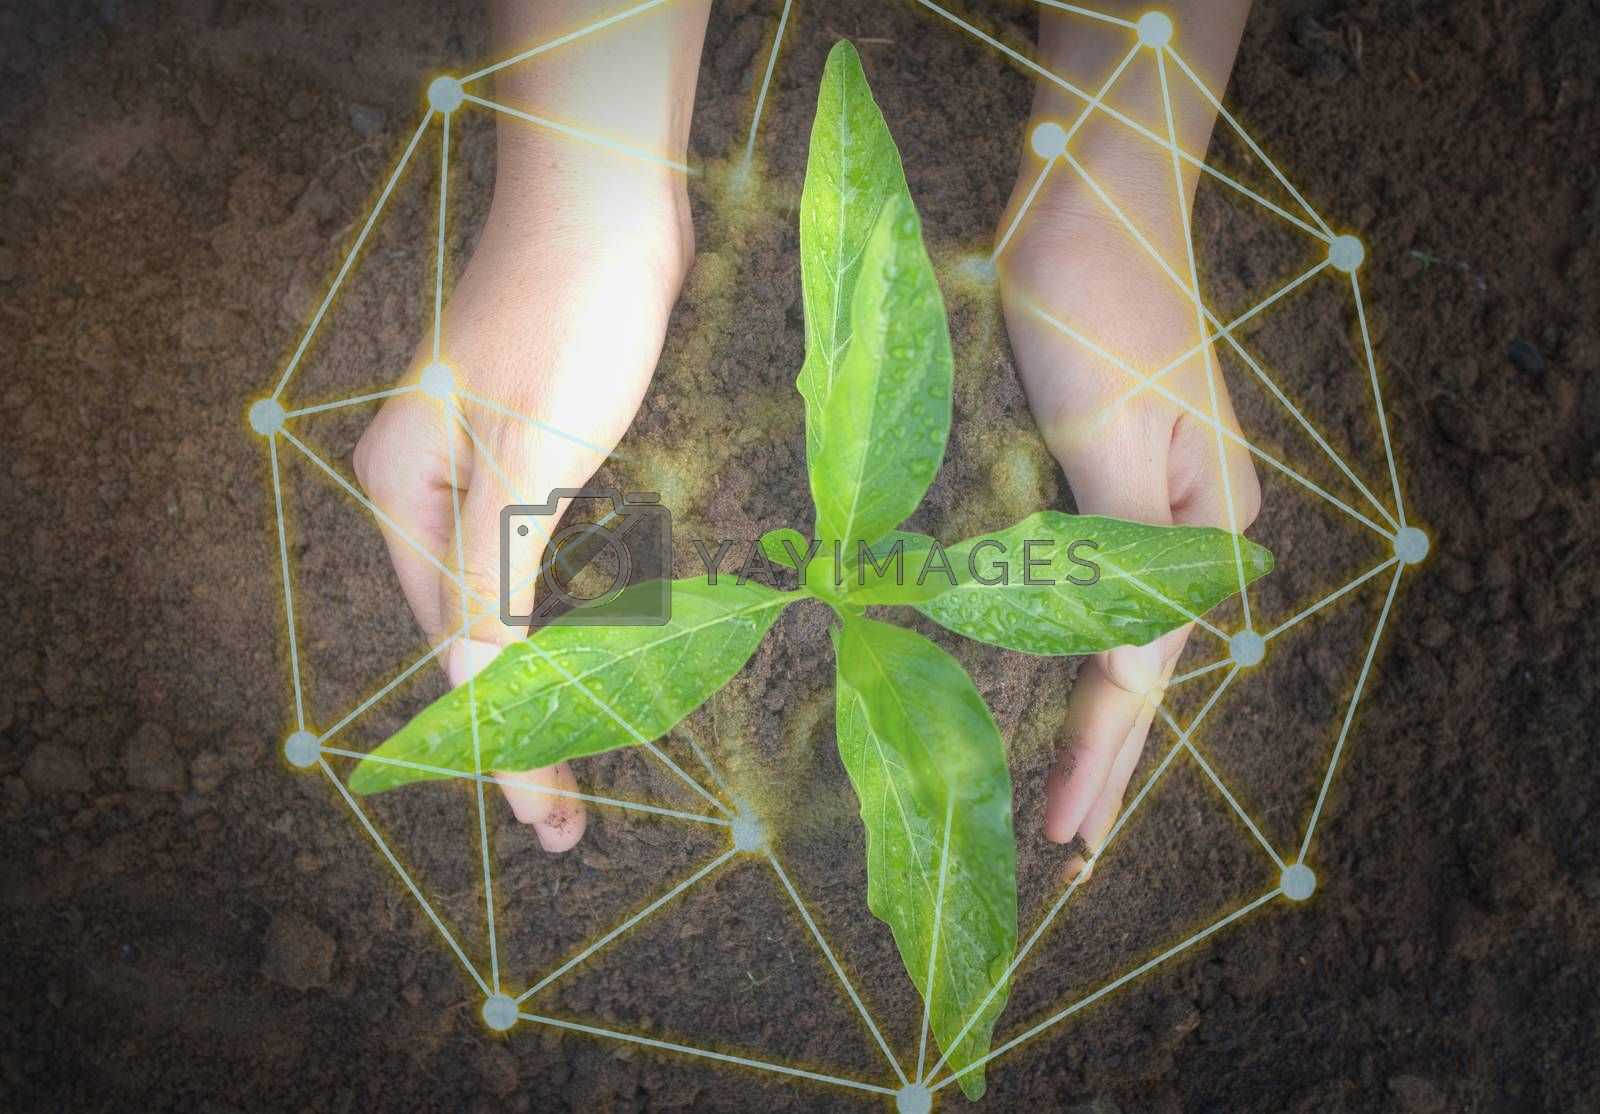 The top view of the hand holding the seedling shows natural environmental friendliness, protection and conservation.